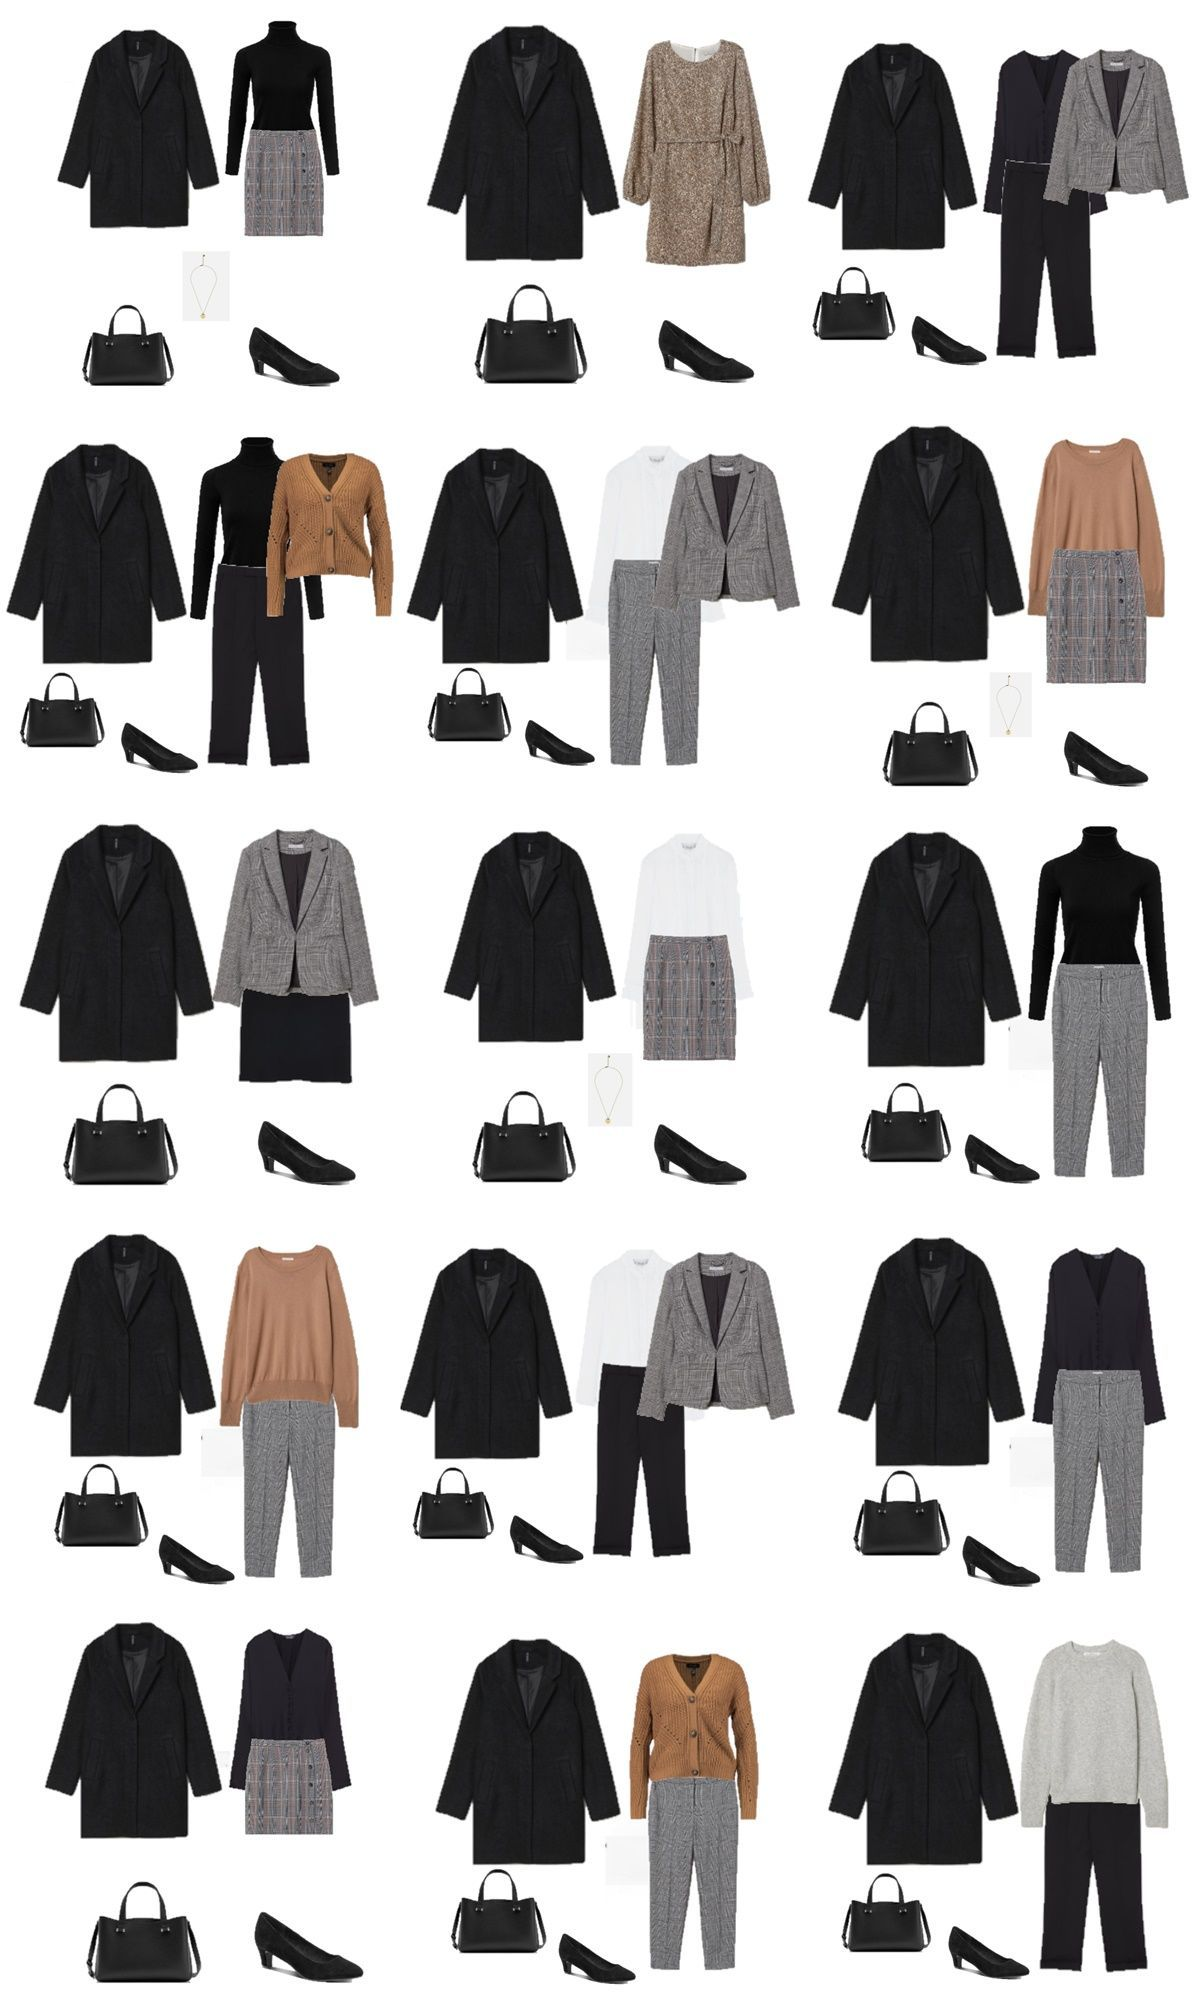 Winter Capsule Wardrobe - womenontrend. Winter Workwear/ Business Casual / Office Outfits 2018